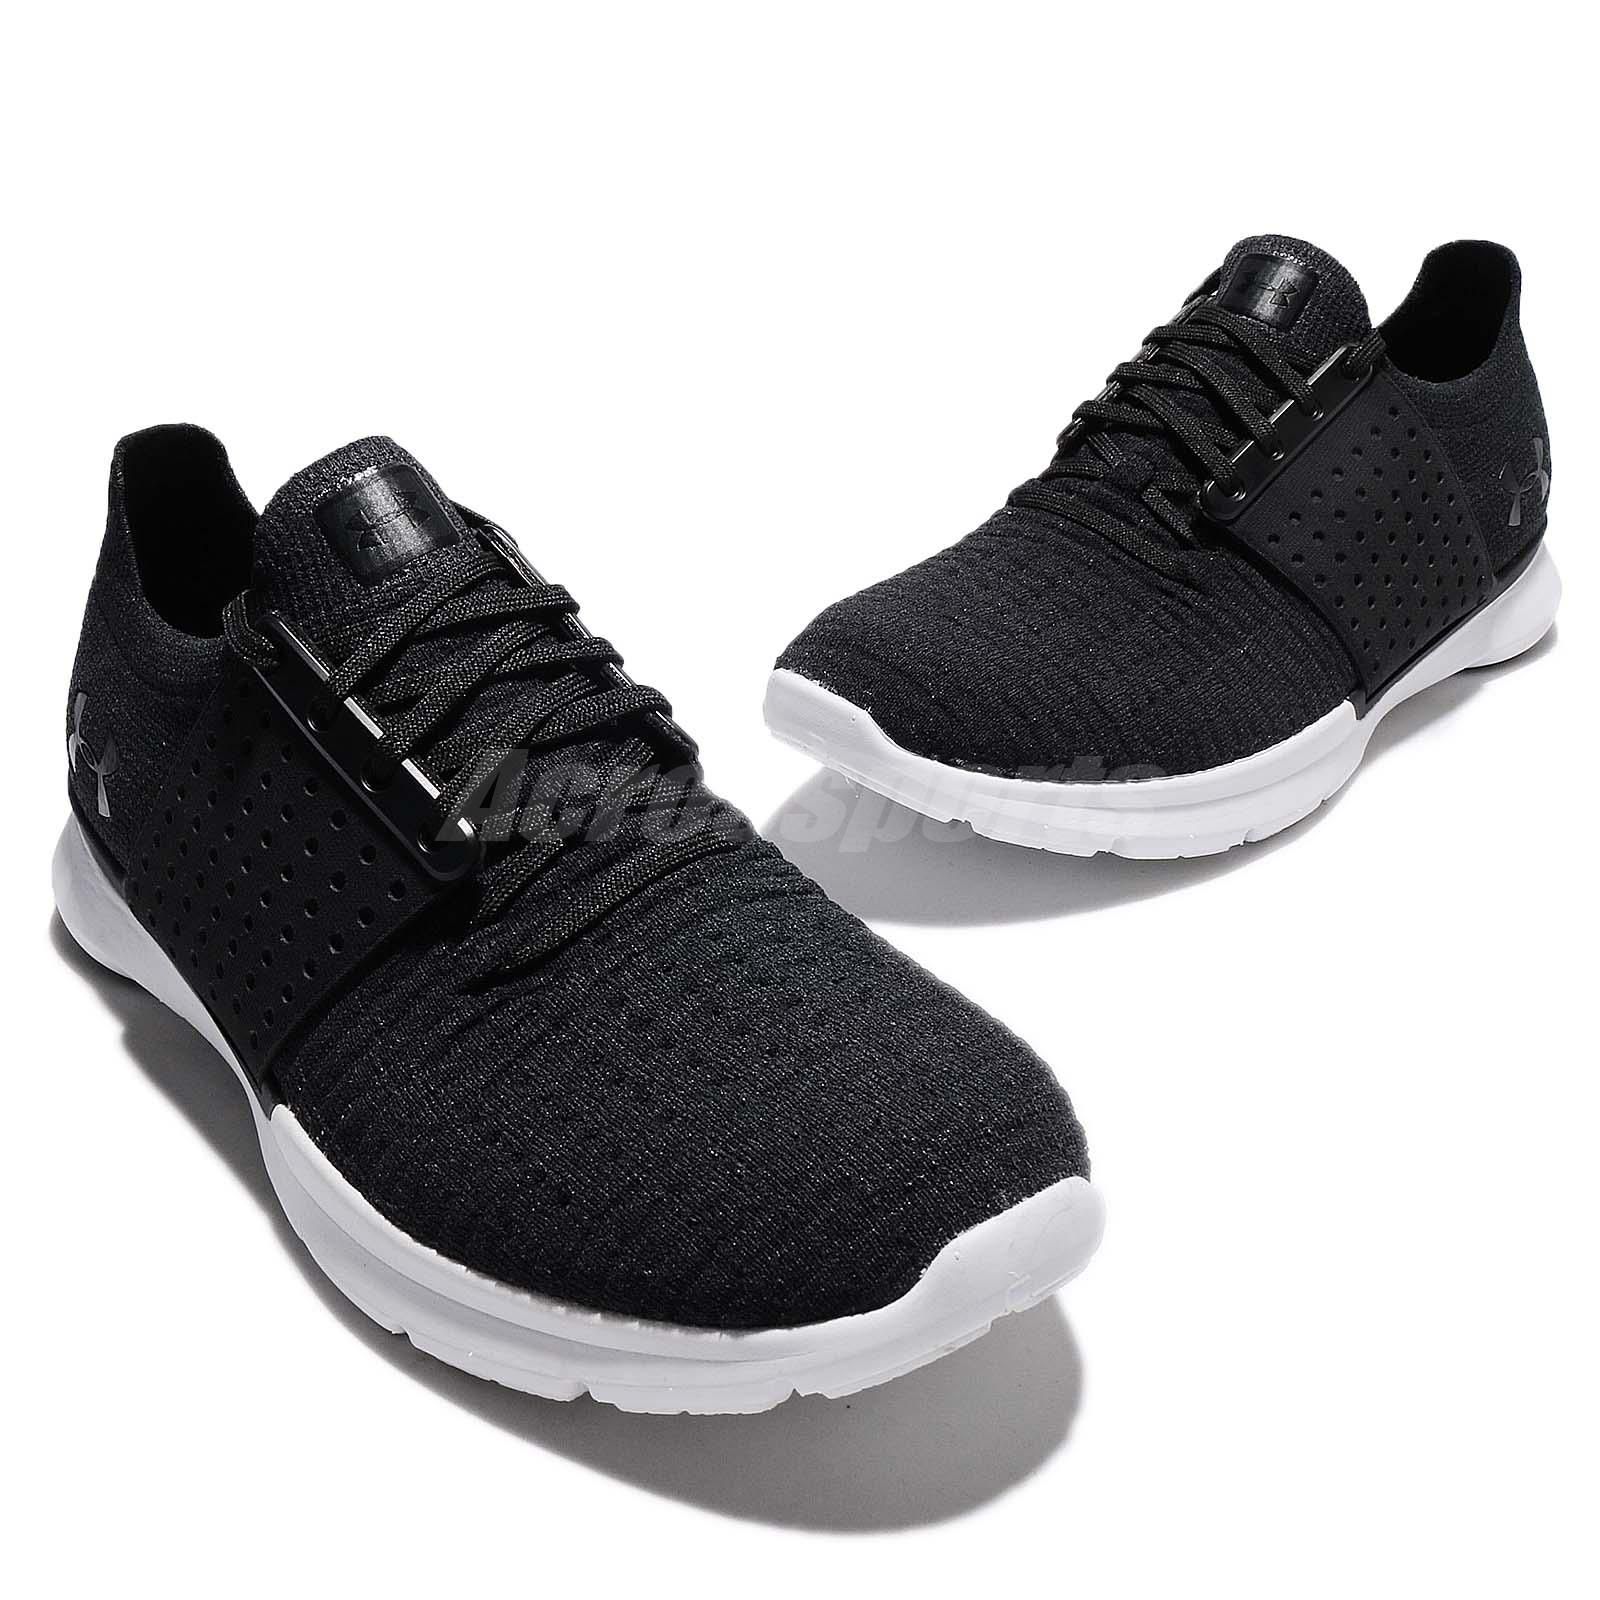 under armour shoes black and white. size chart under armour shoes black and white /